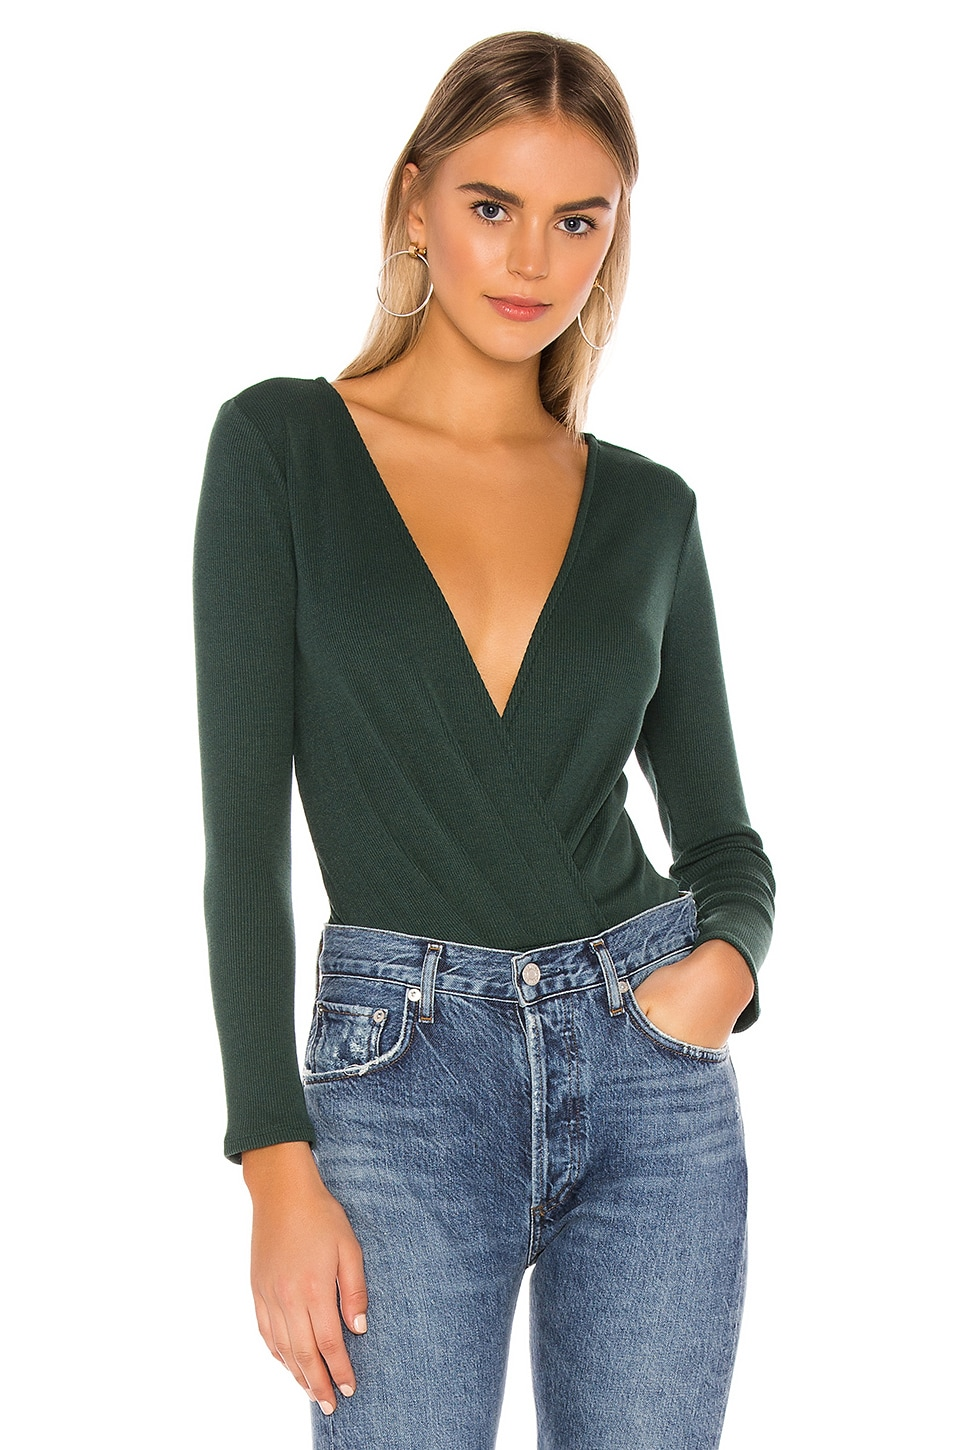 Privacy Please Bolt Bodysuit in Emerald Green